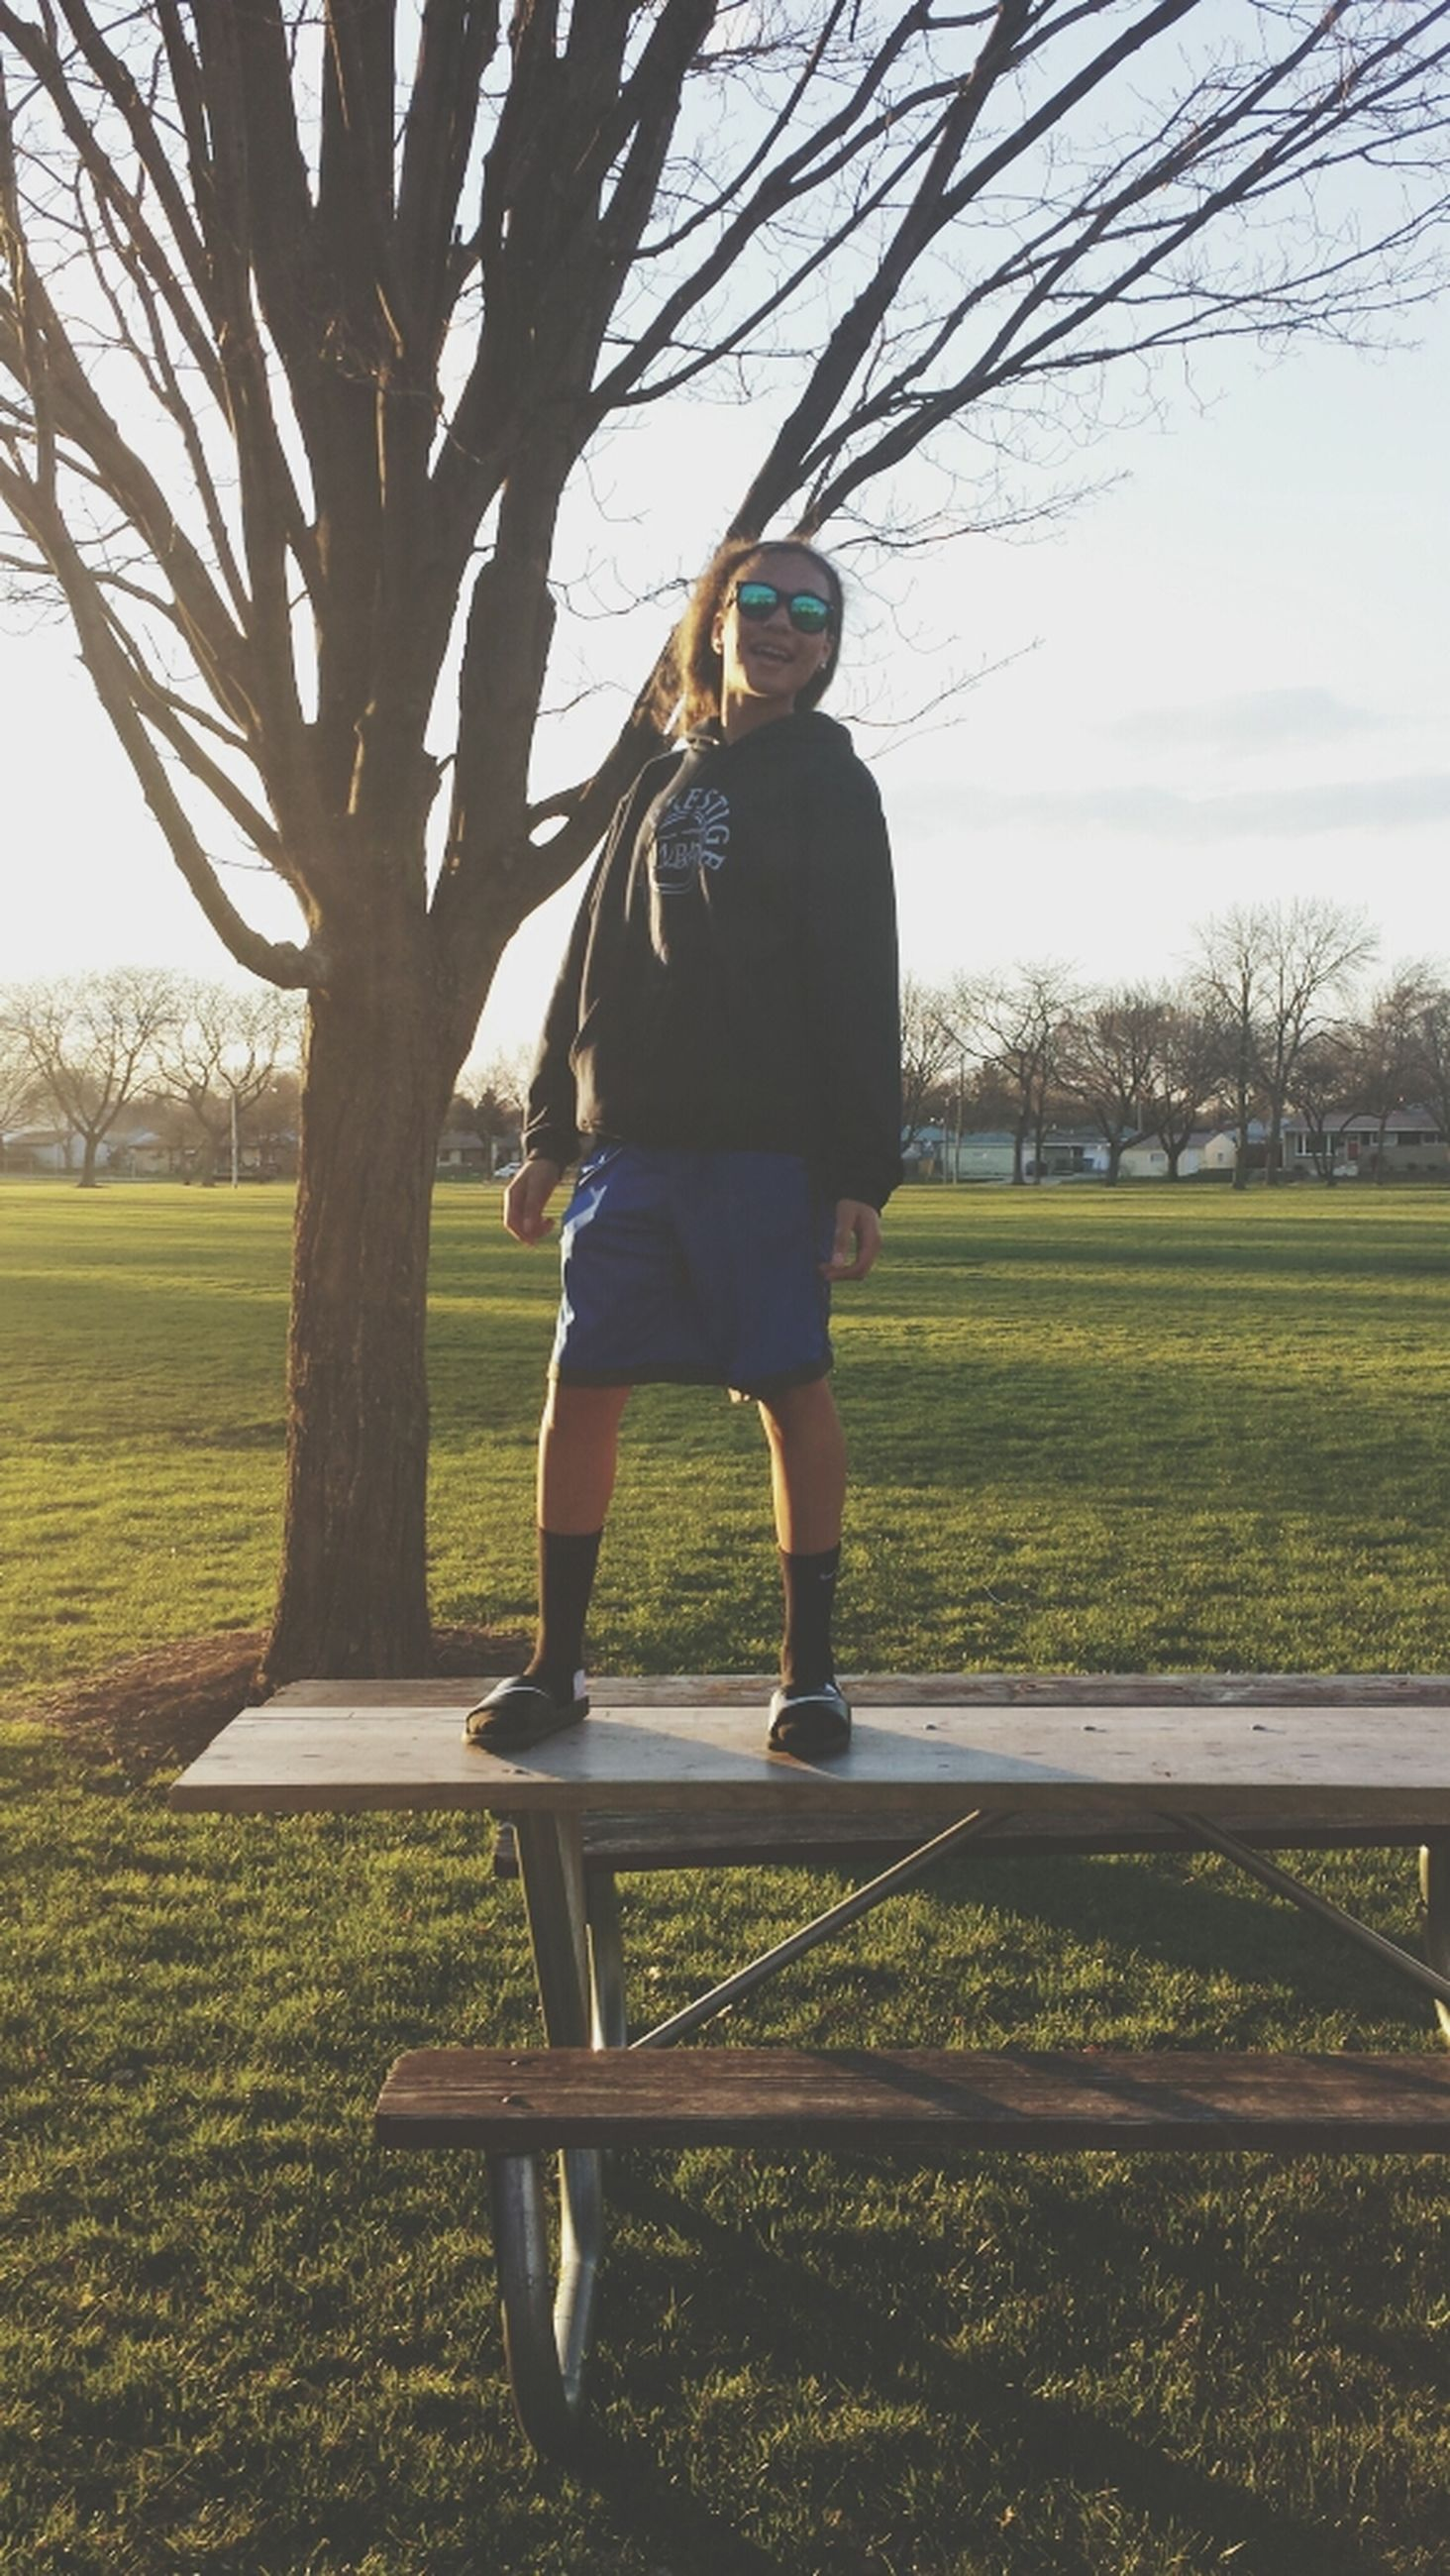 tree, full length, lifestyles, leisure activity, grass, casual clothing, park - man made space, childhood, field, rear view, sky, sunlight, swing, men, day, outdoors, boys, park